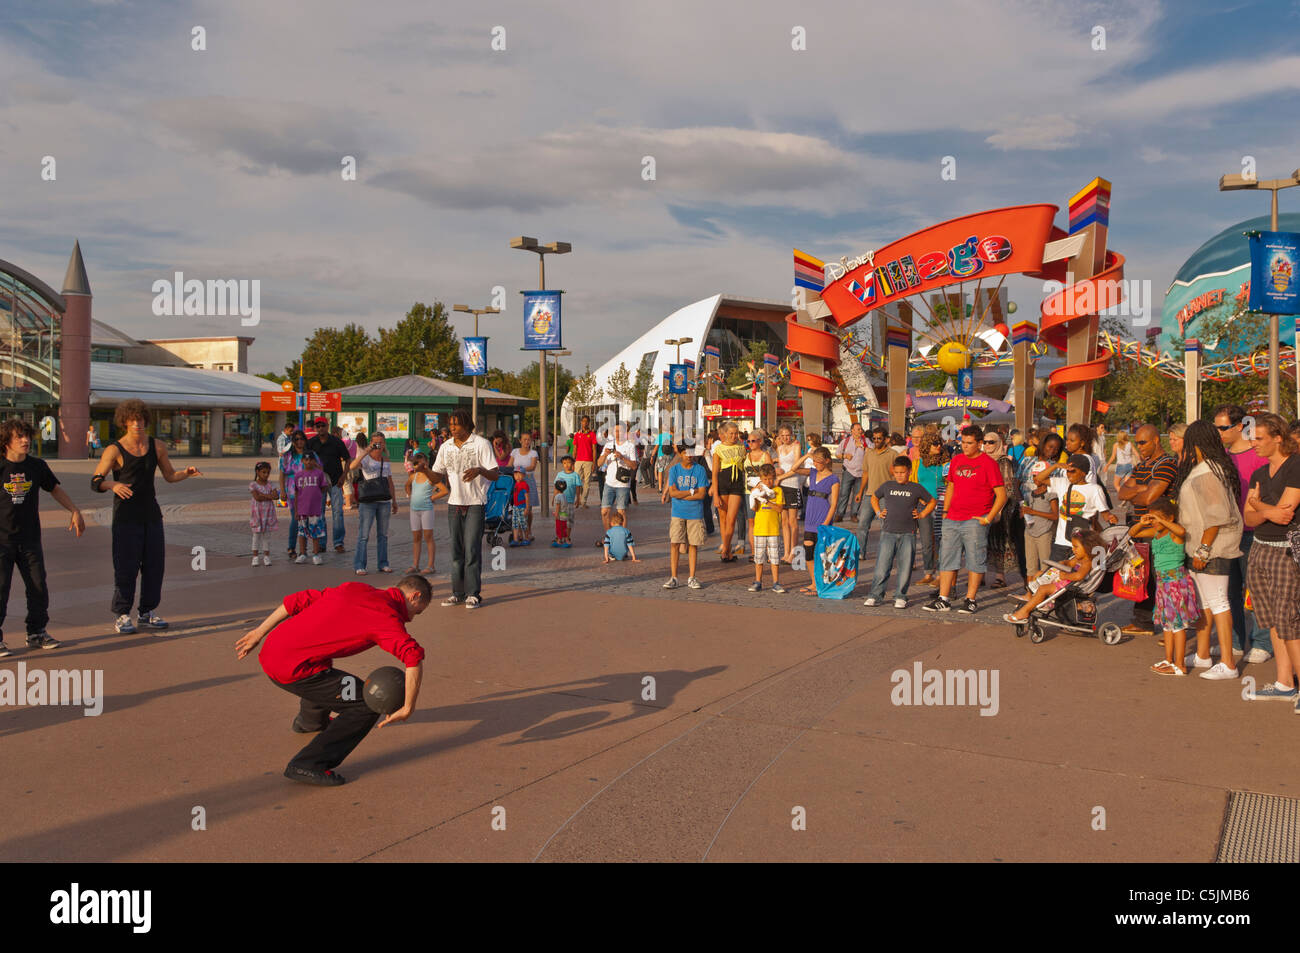 A street performer busking outside the entrance to Disney Village at Disneyland Paris in France - Stock Image